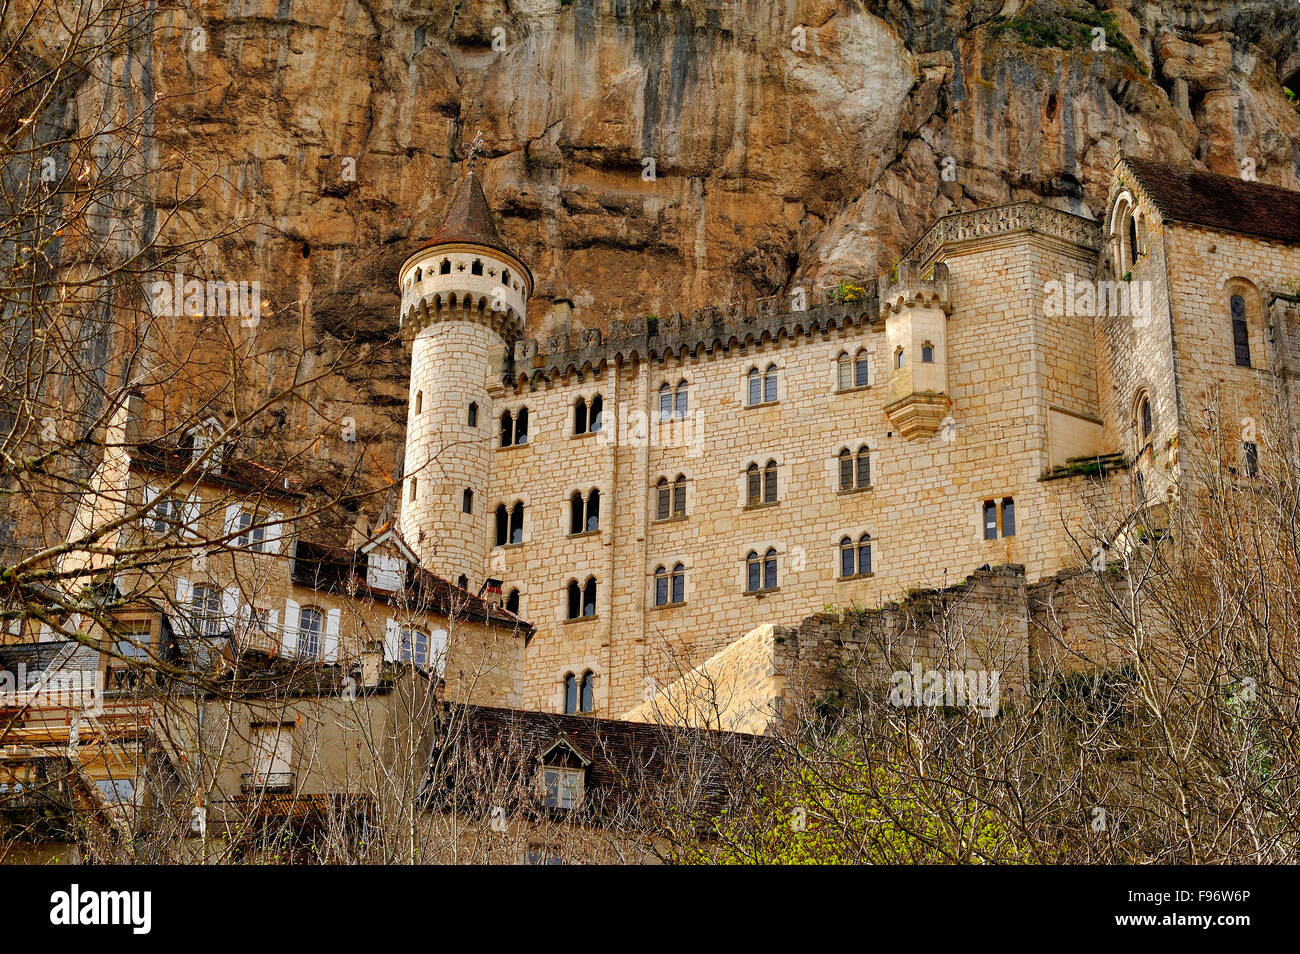 old town of Rocamadour, Lot Department, Aquitaine, France - Stock Image